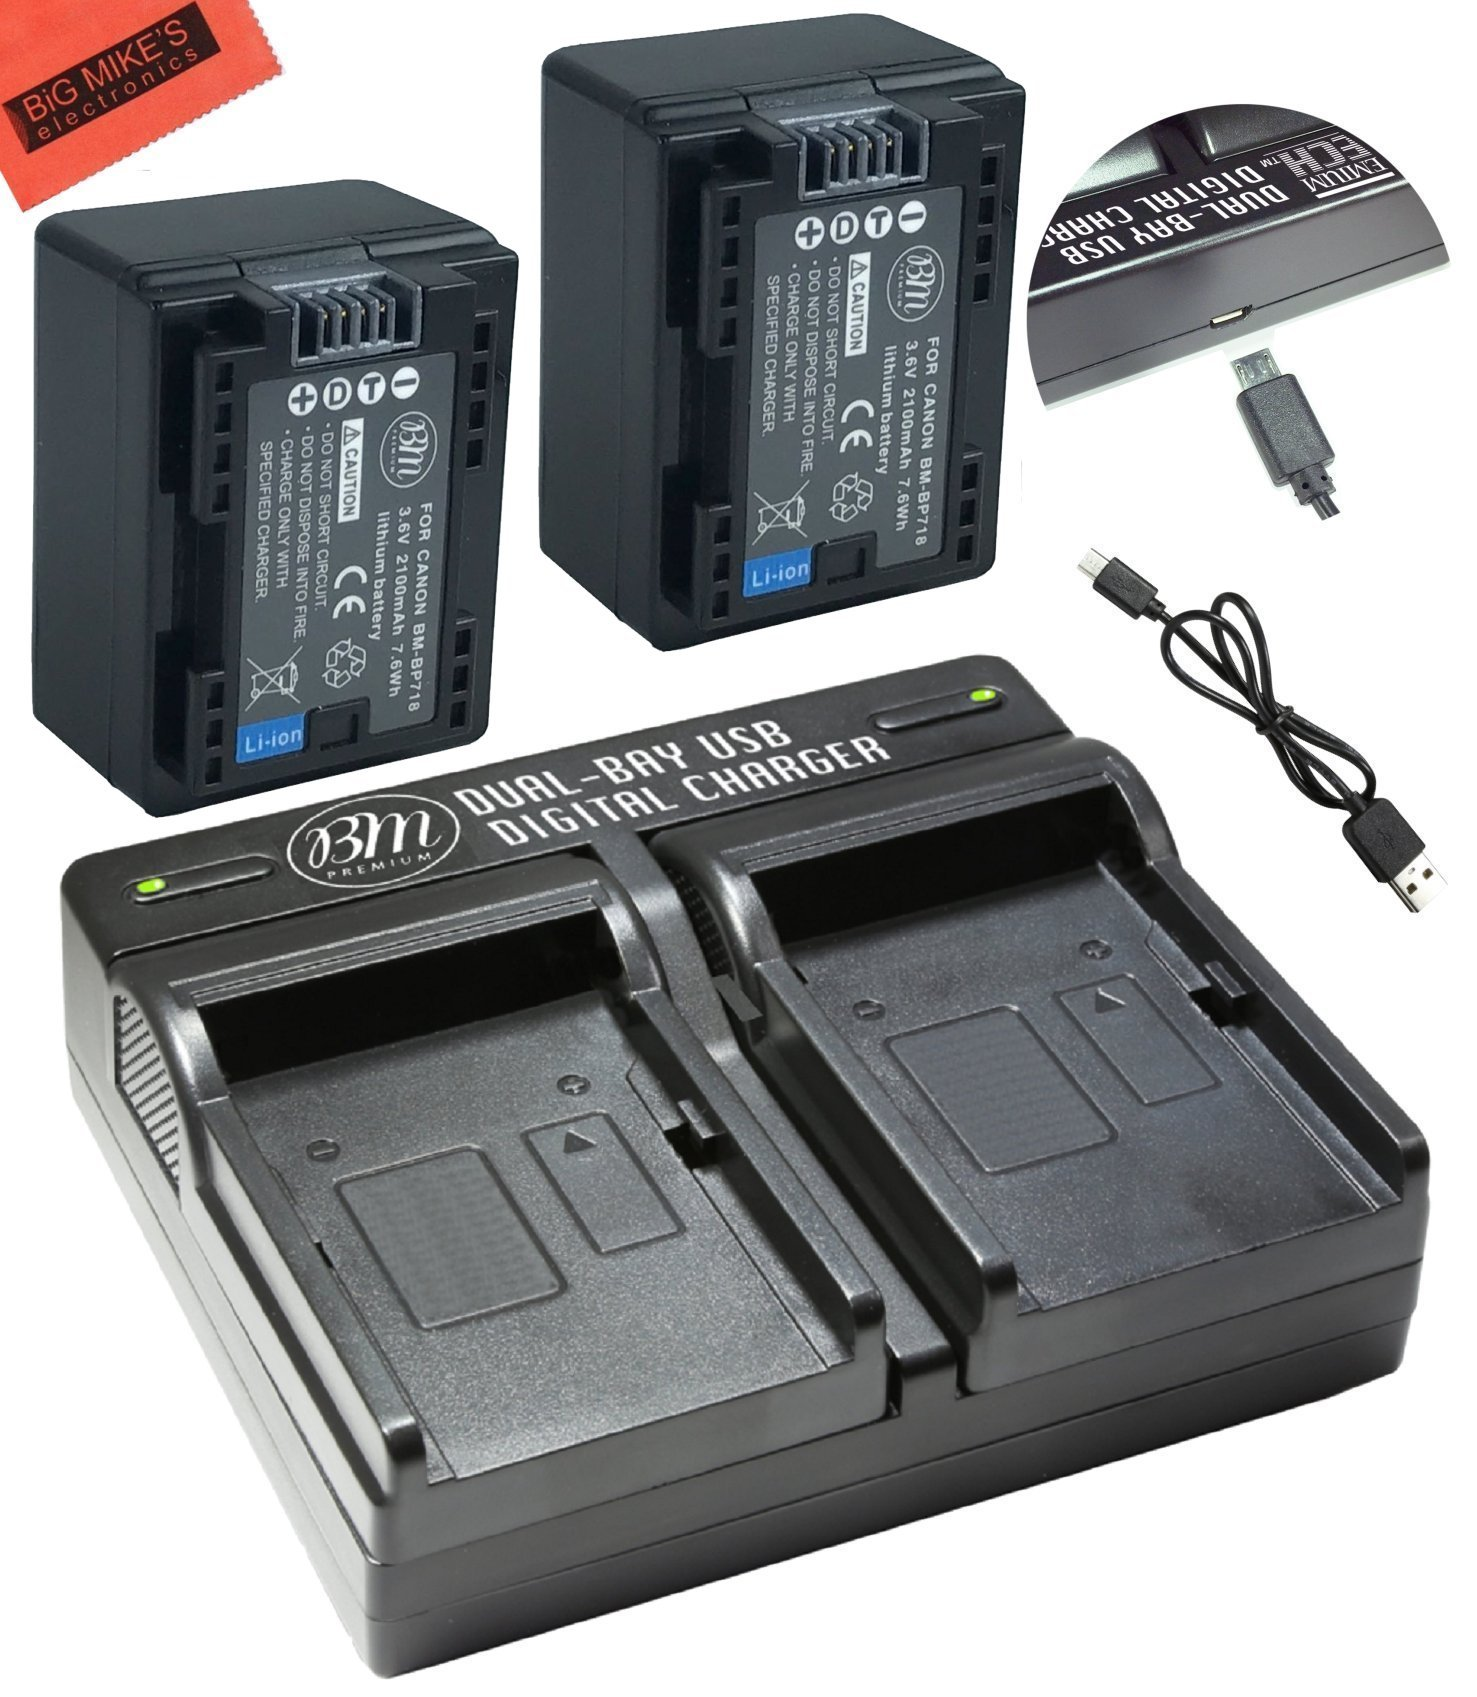 BM Premium 2 BP-718 Batteries and Dual Charger for Canon Vixia HFR80 HFR82 HFR800, HFR70, HFR72, HFR700, HFR32, HFR300, HFR40, HFR42, HFR400, HFR50, HFR52, HFR500, HFR60, HFR62, HFR600 Camcorder